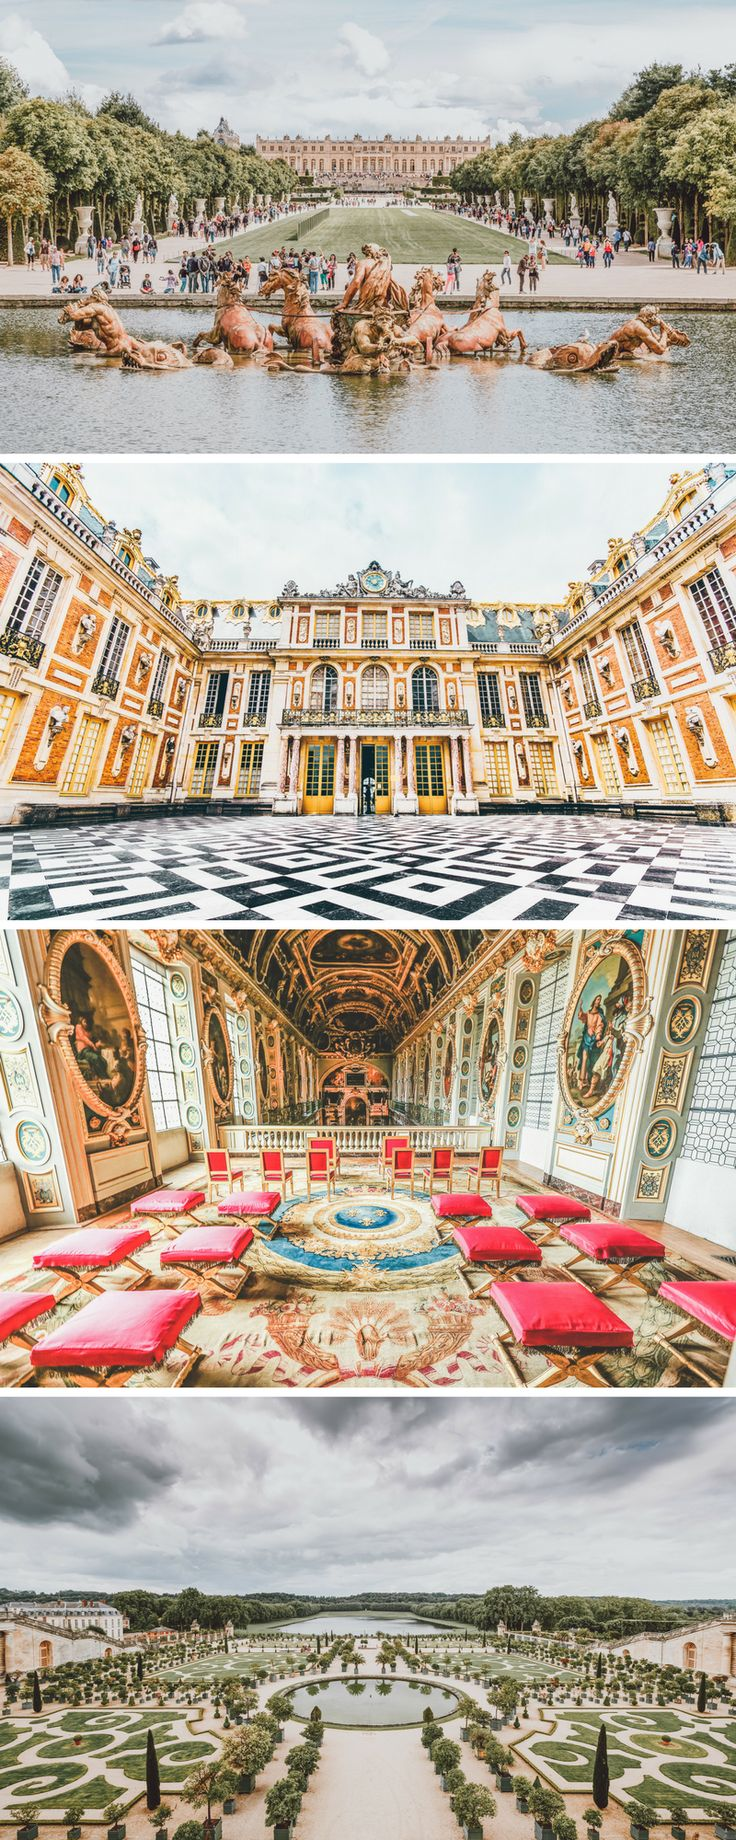 Versailles palace and gardens is a must see even if you only have 3 days to spend in Paris. 10 Things You Have to see Your First Time in Paris!  These Paris travel tips will you help as you as you explore the history, culture, food and top places to visit in Paris, France.  Avenlylanetravel.com | #paris #france #europe #travel #photography #bucketlist #avenlylanetravel